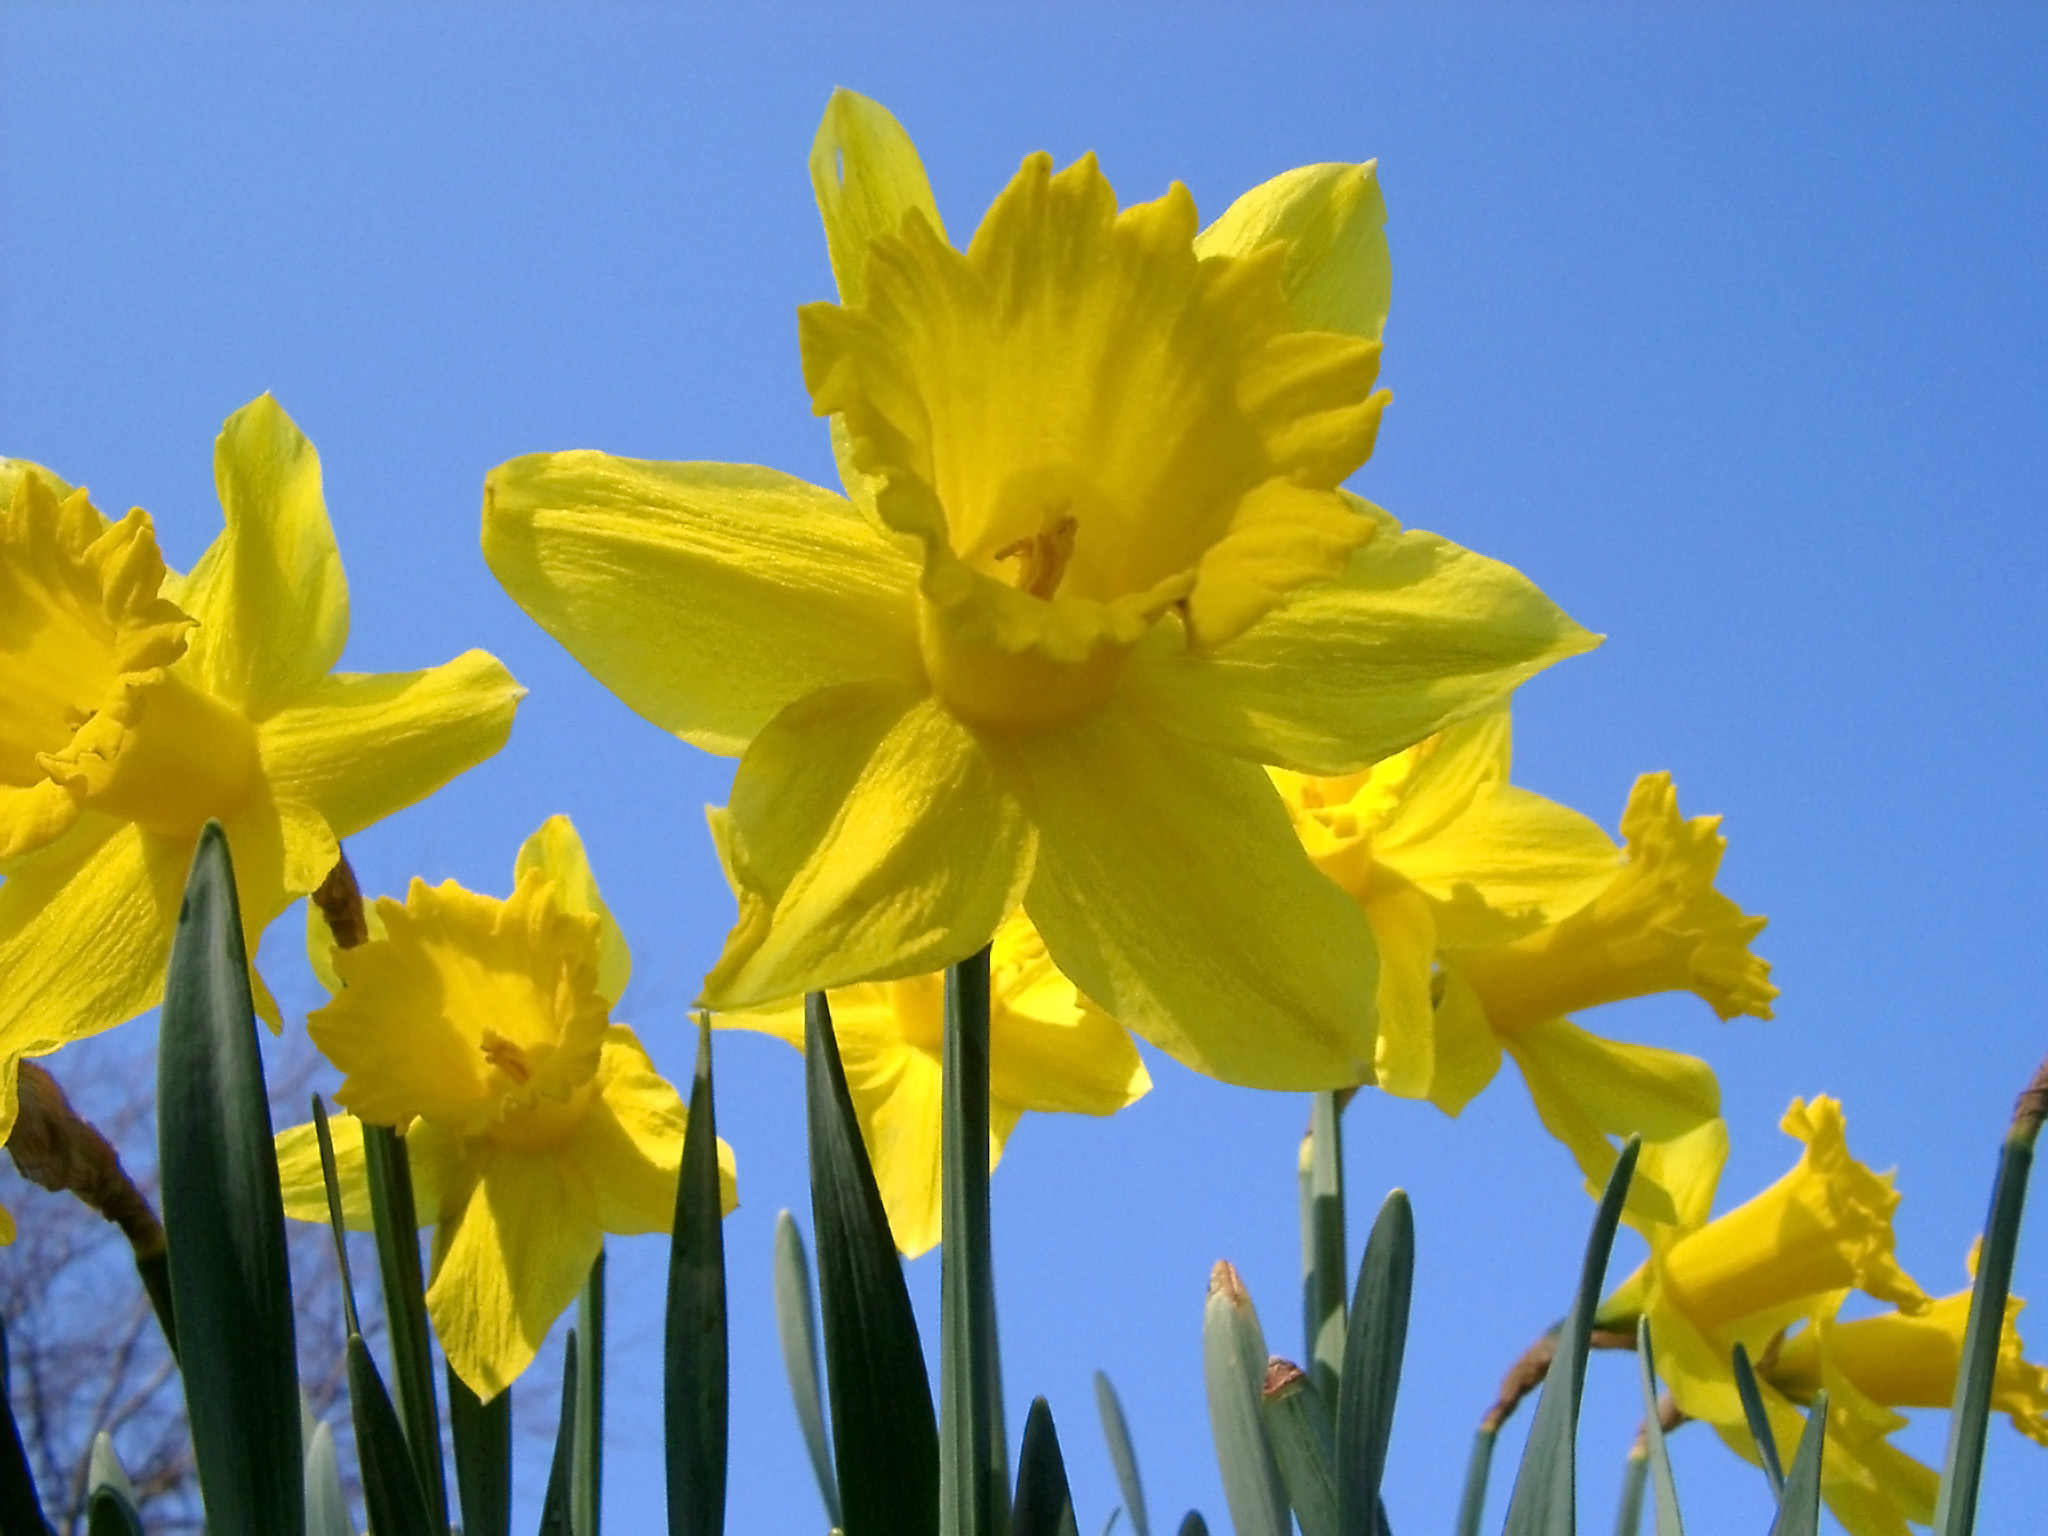 Free Stock Photo Of Yellow Daffodil Flowers Under A Clear Blue Sky